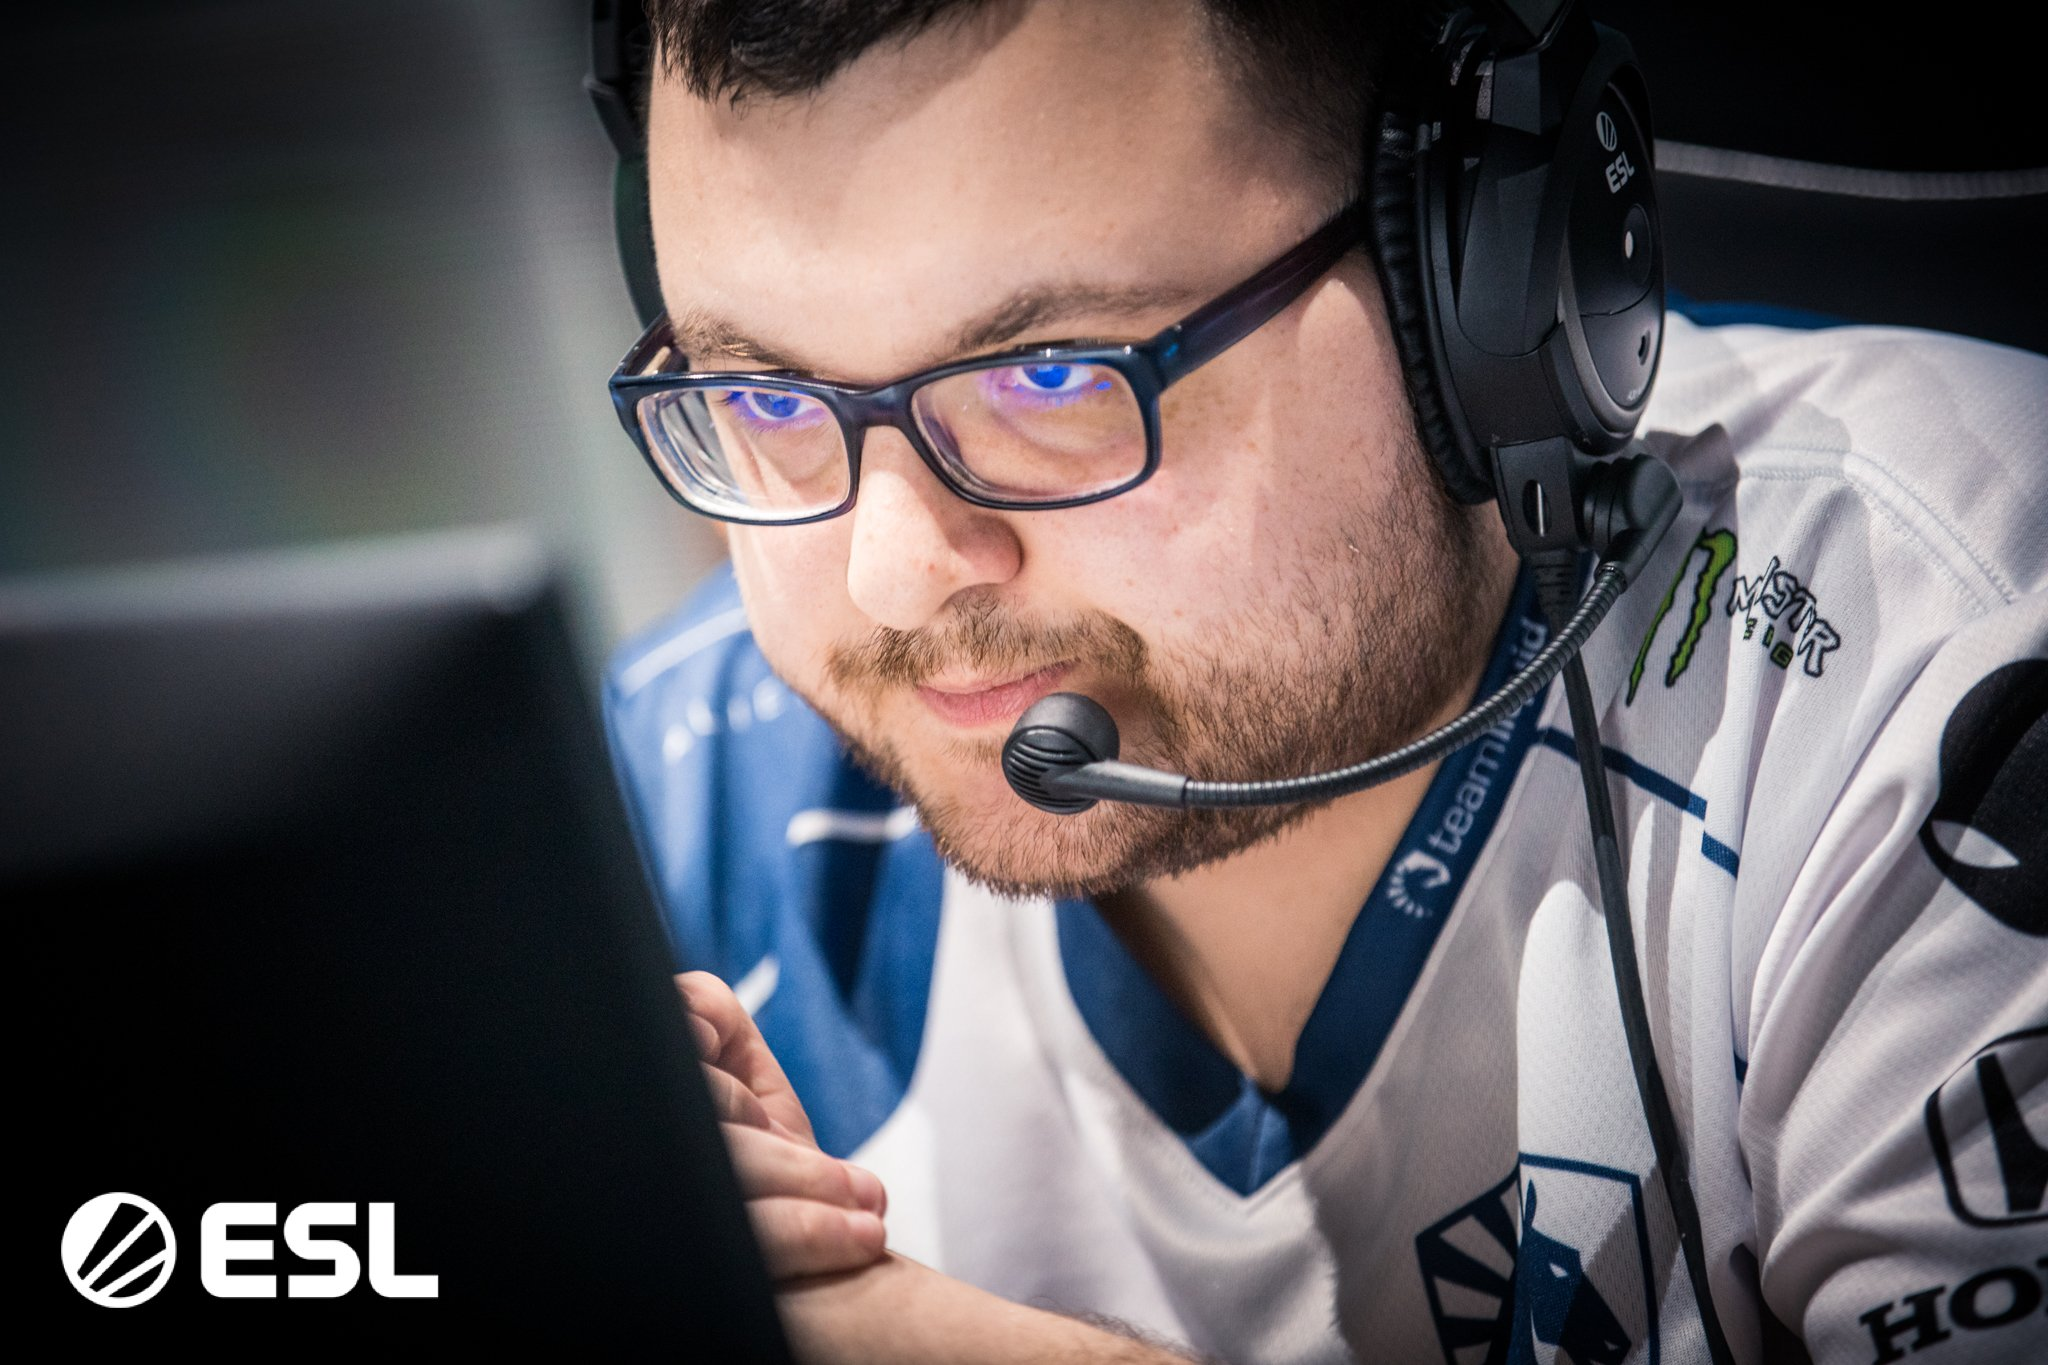 Gambit beats Liquid in the lower bracket playoffs of ESL